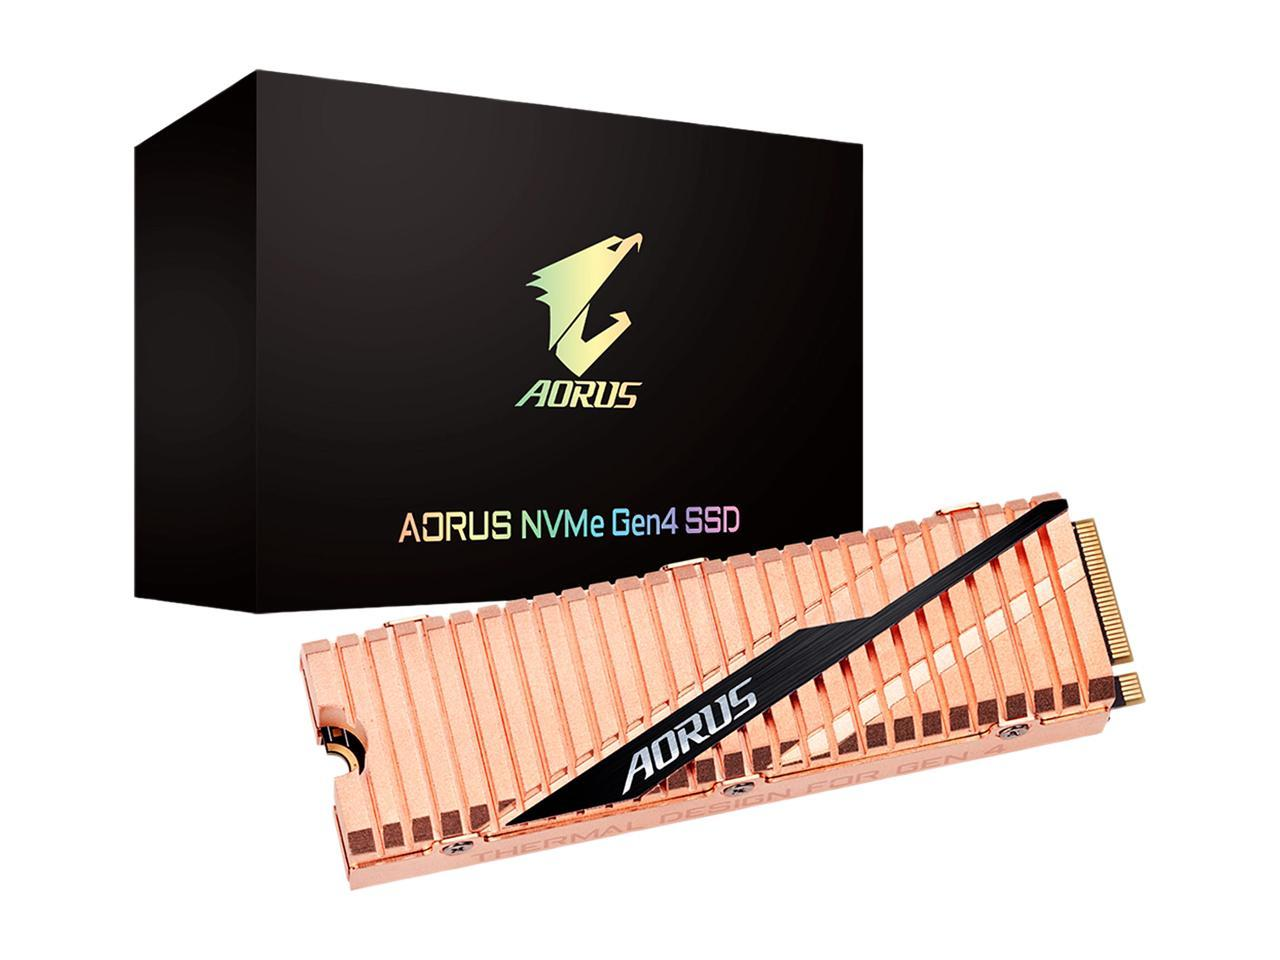 A Guide For How To Install Aorus 2TB 4th Gen Nvme SSD Into X570 Aorus Pro WIFI Motherboard